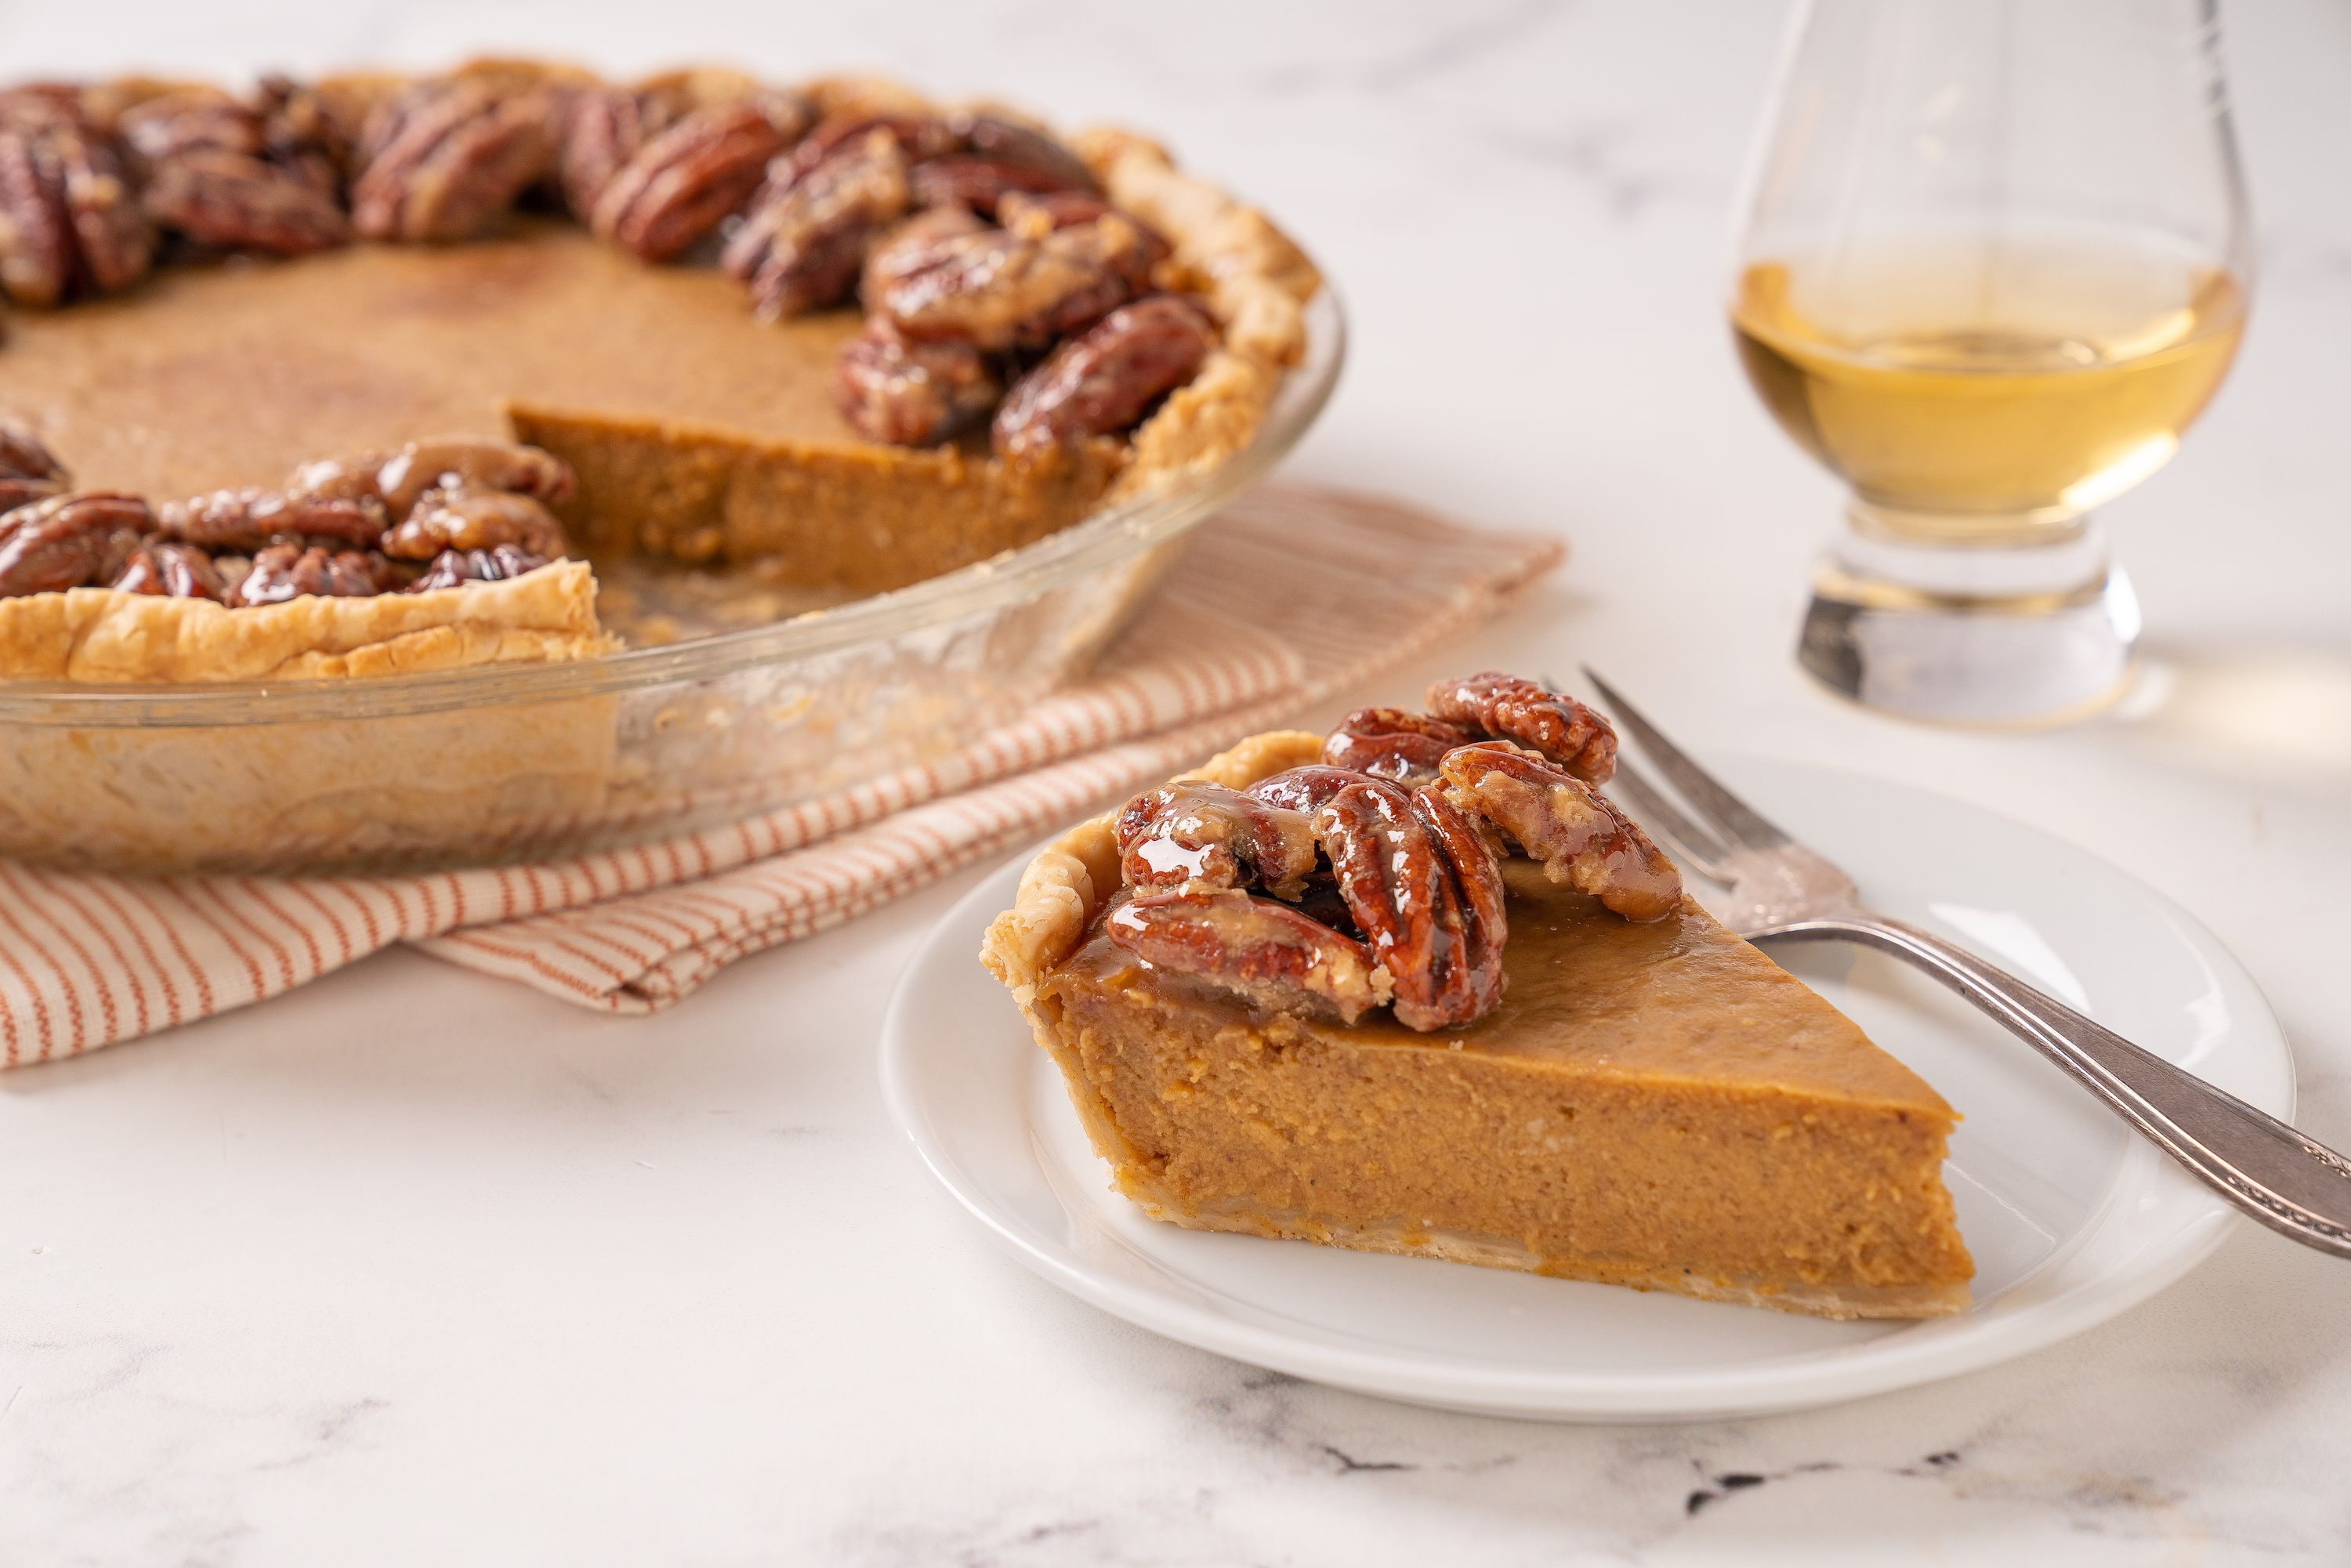 Spike Your Pumpkin Pie With Fireball Whisky This Thanksgiving